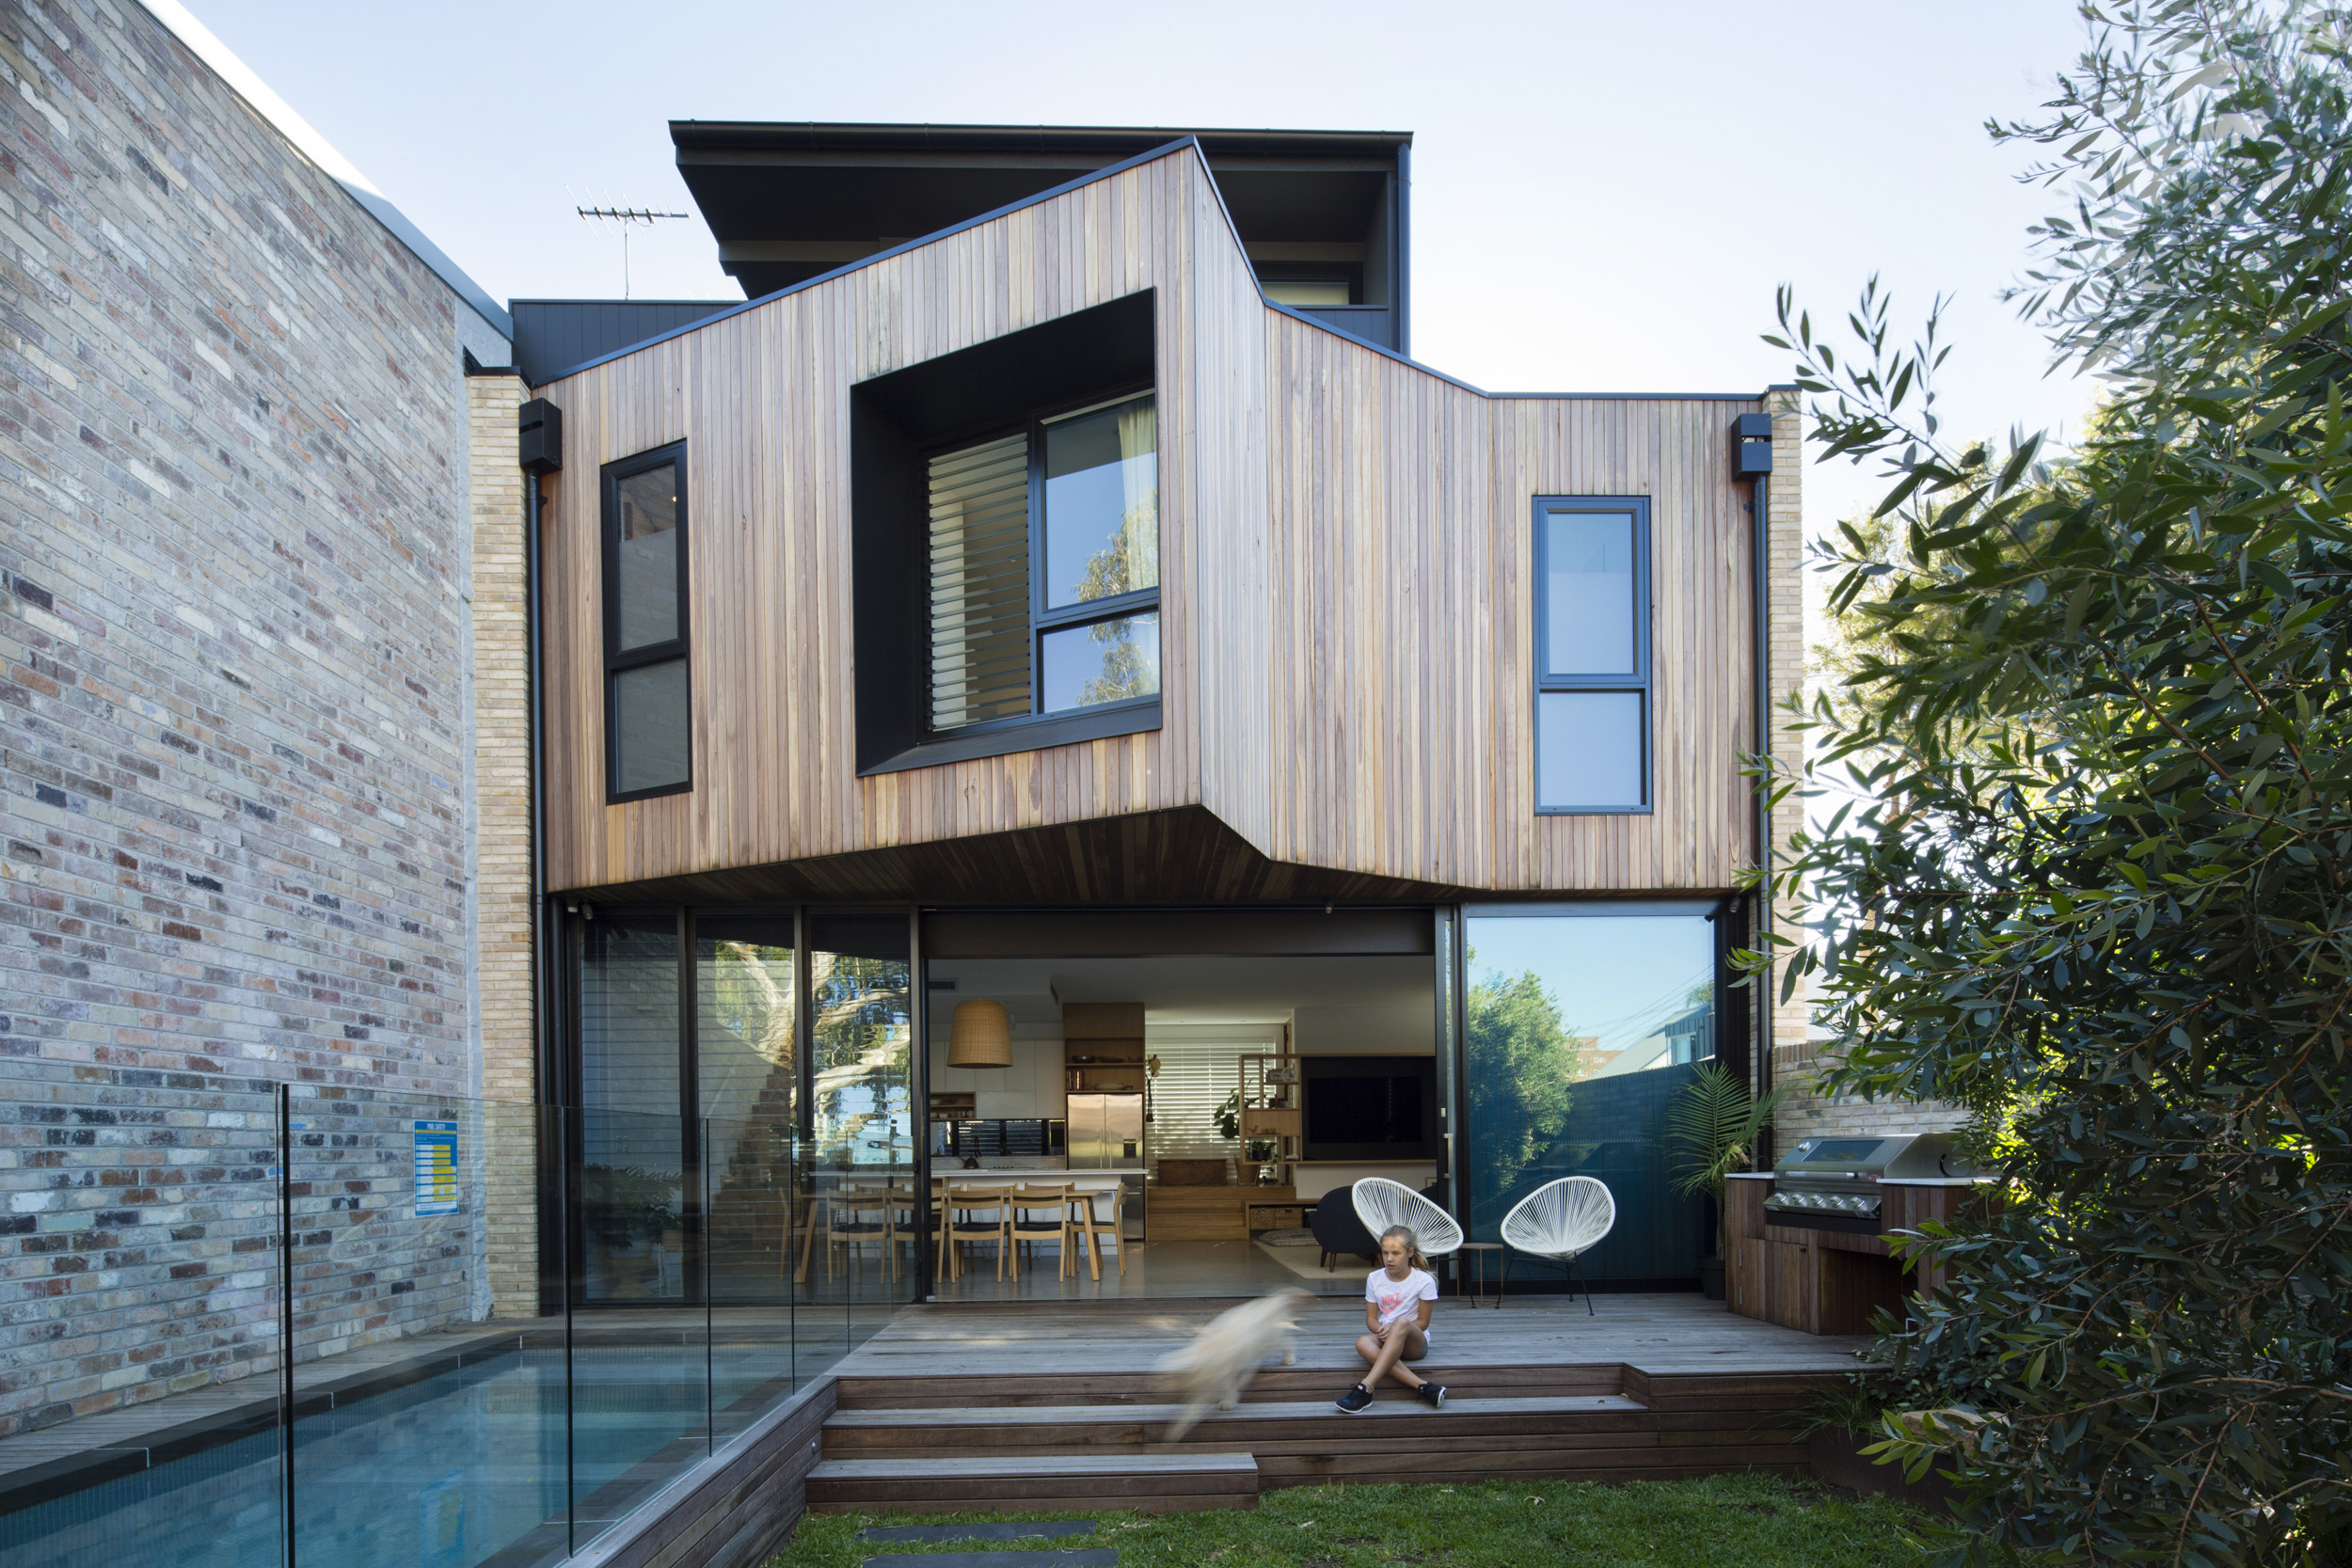 residential_architects_sq_projects_sydney_11.jpg